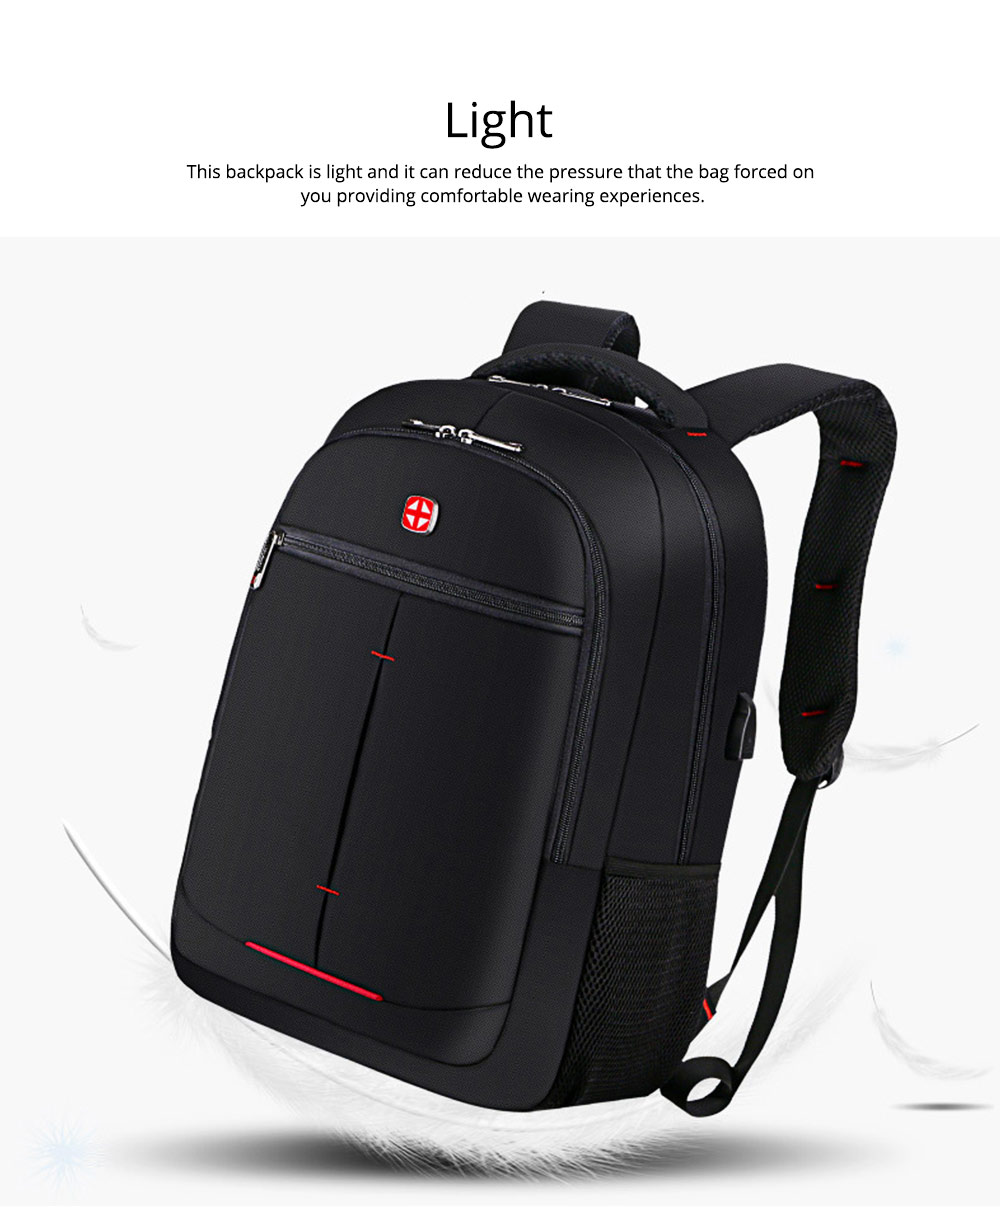 Minimalist Unisex Black Waterproof Travel Backpack, Quality Business Students Laptop Shoulder Bag for Men Women 8